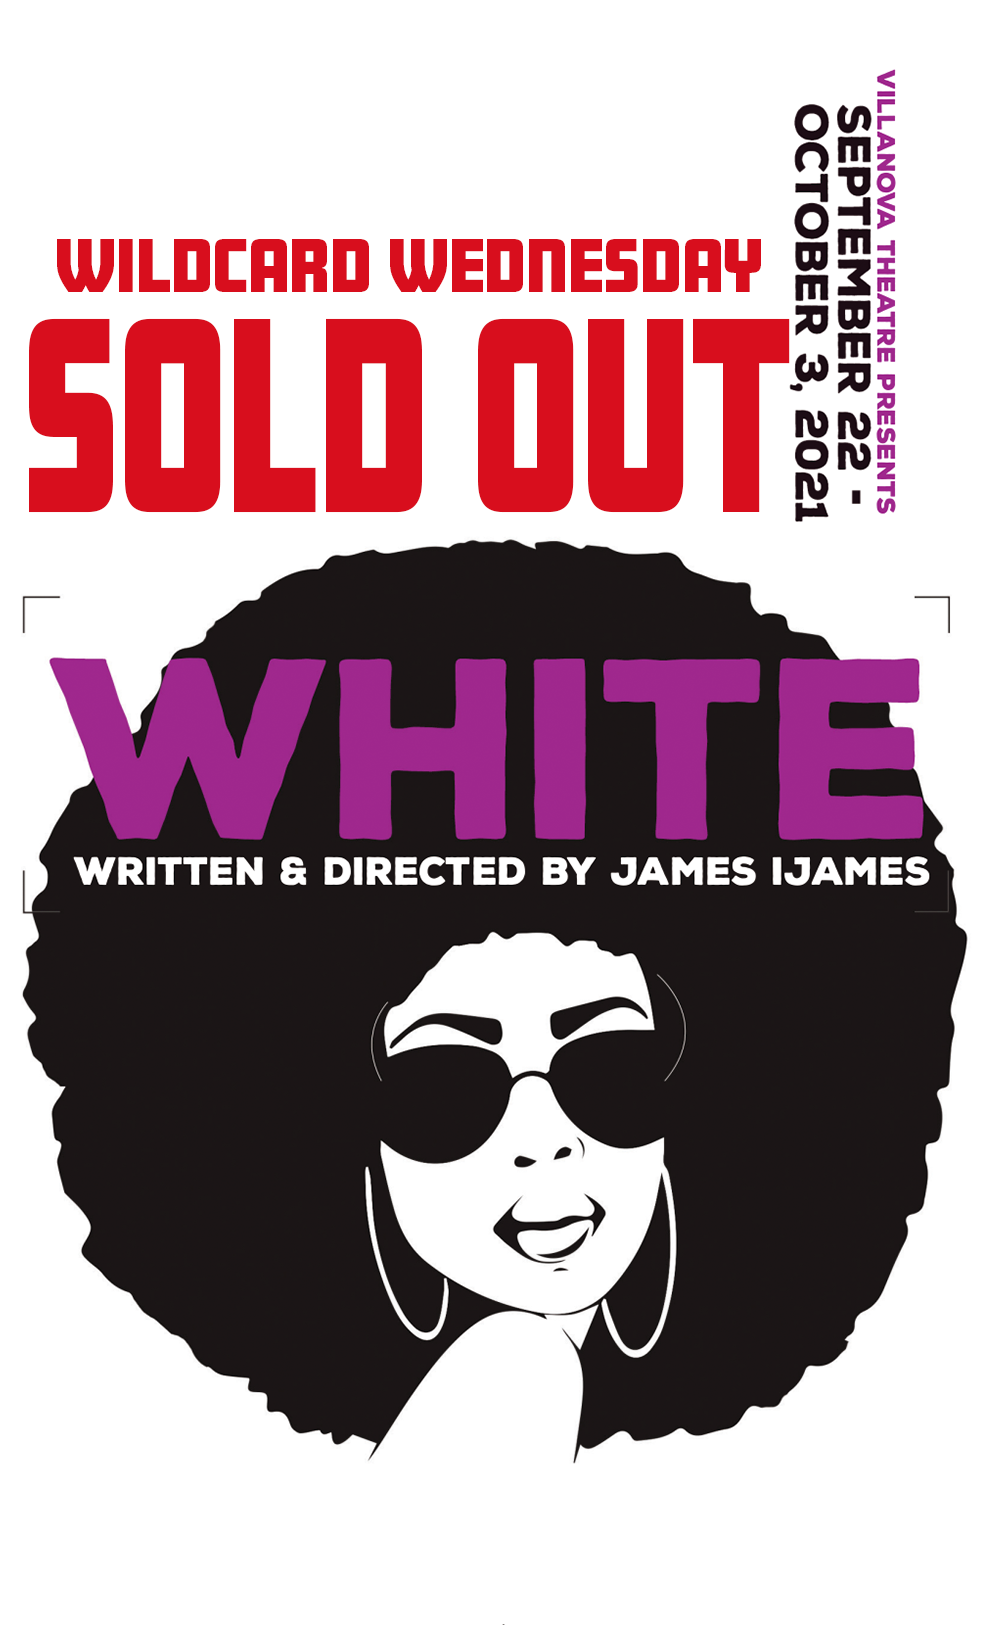 wildcard wednsday white sold out